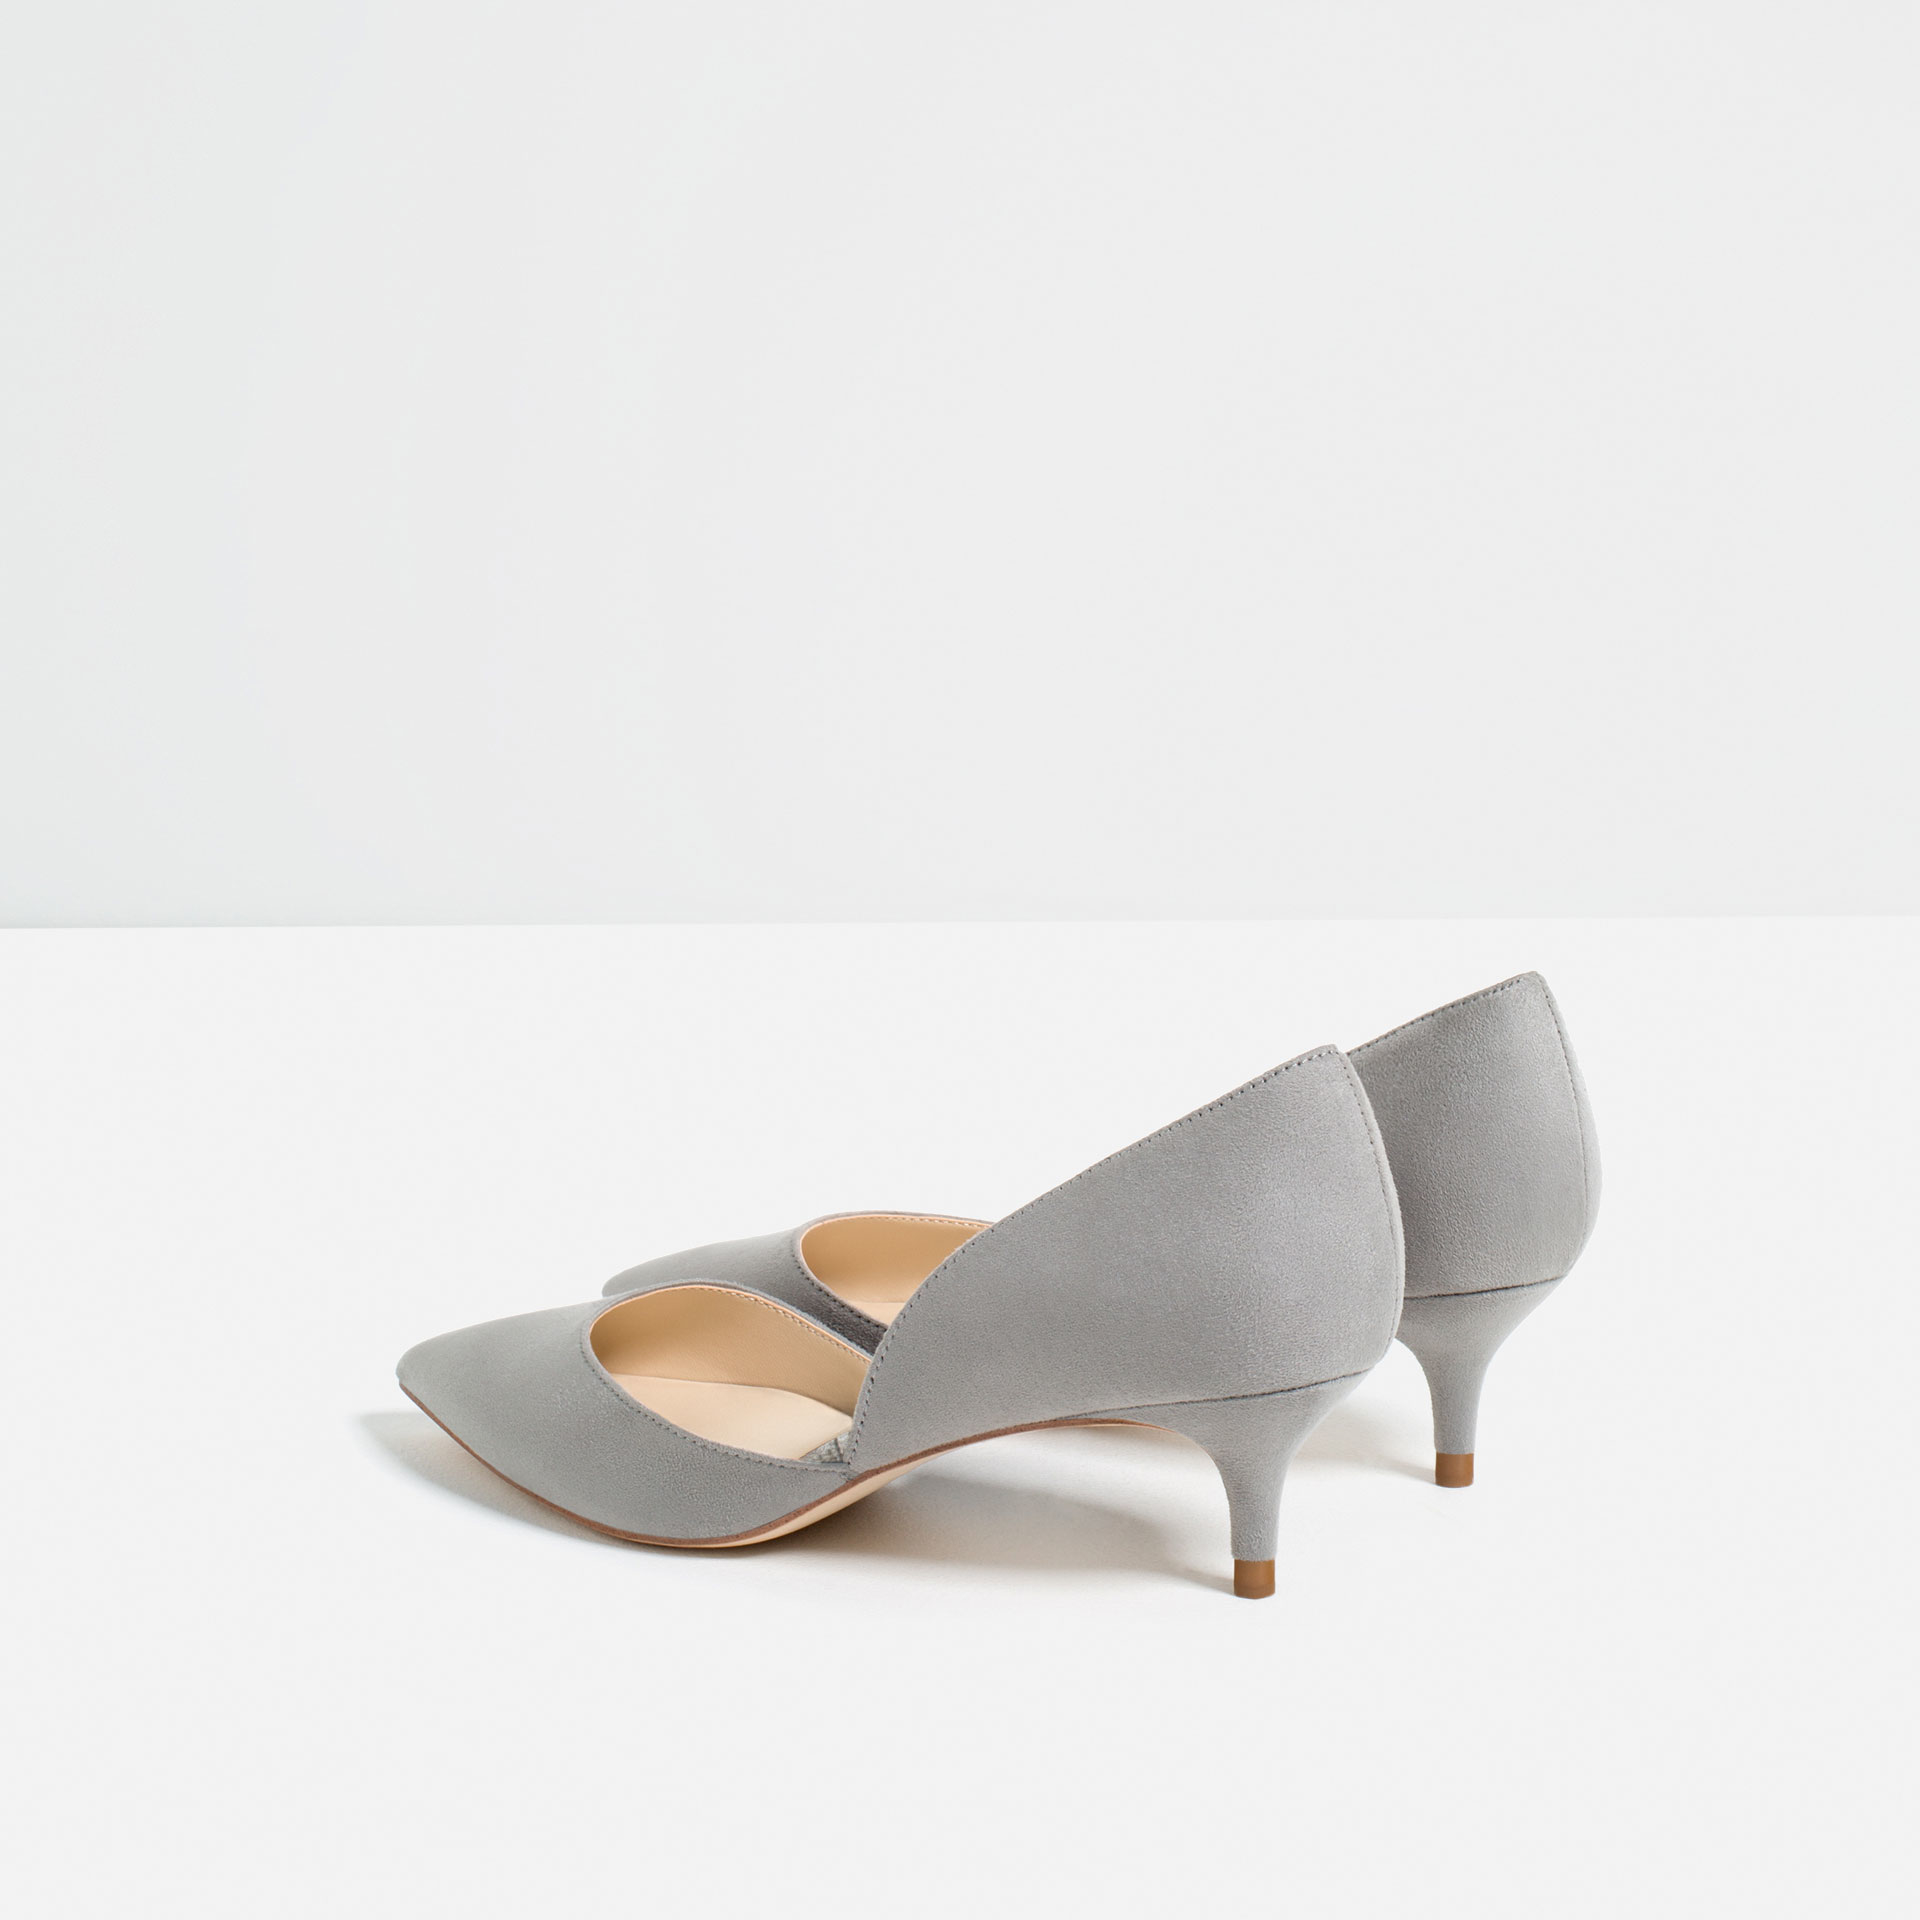 zara mid heel dorsay shoes grey